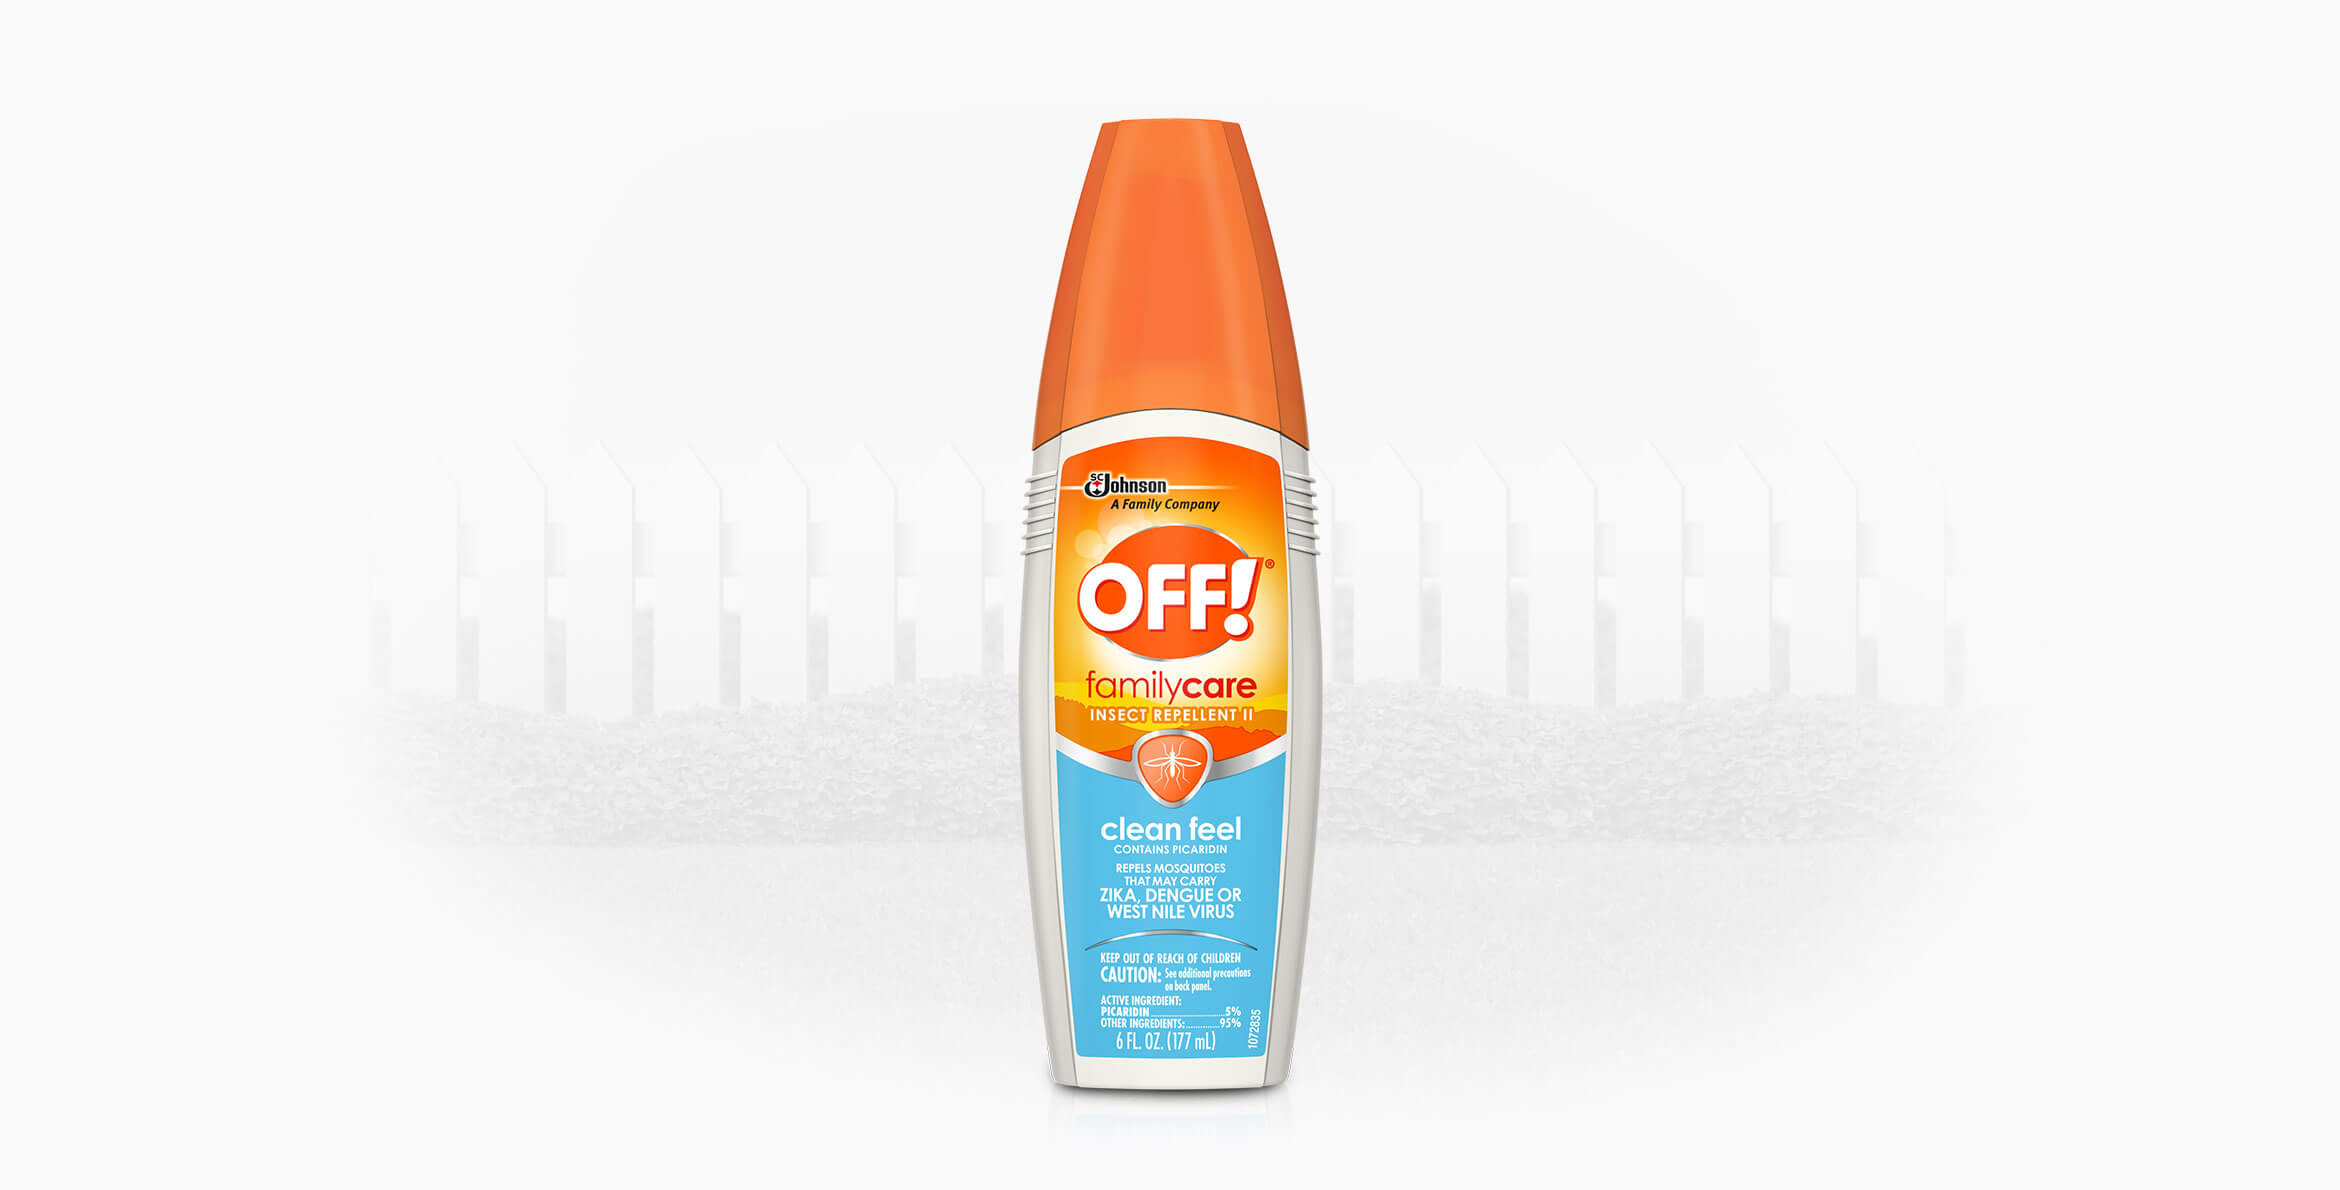 Off Familycare Insect Repellent Ii Clean Feel Off Repellent